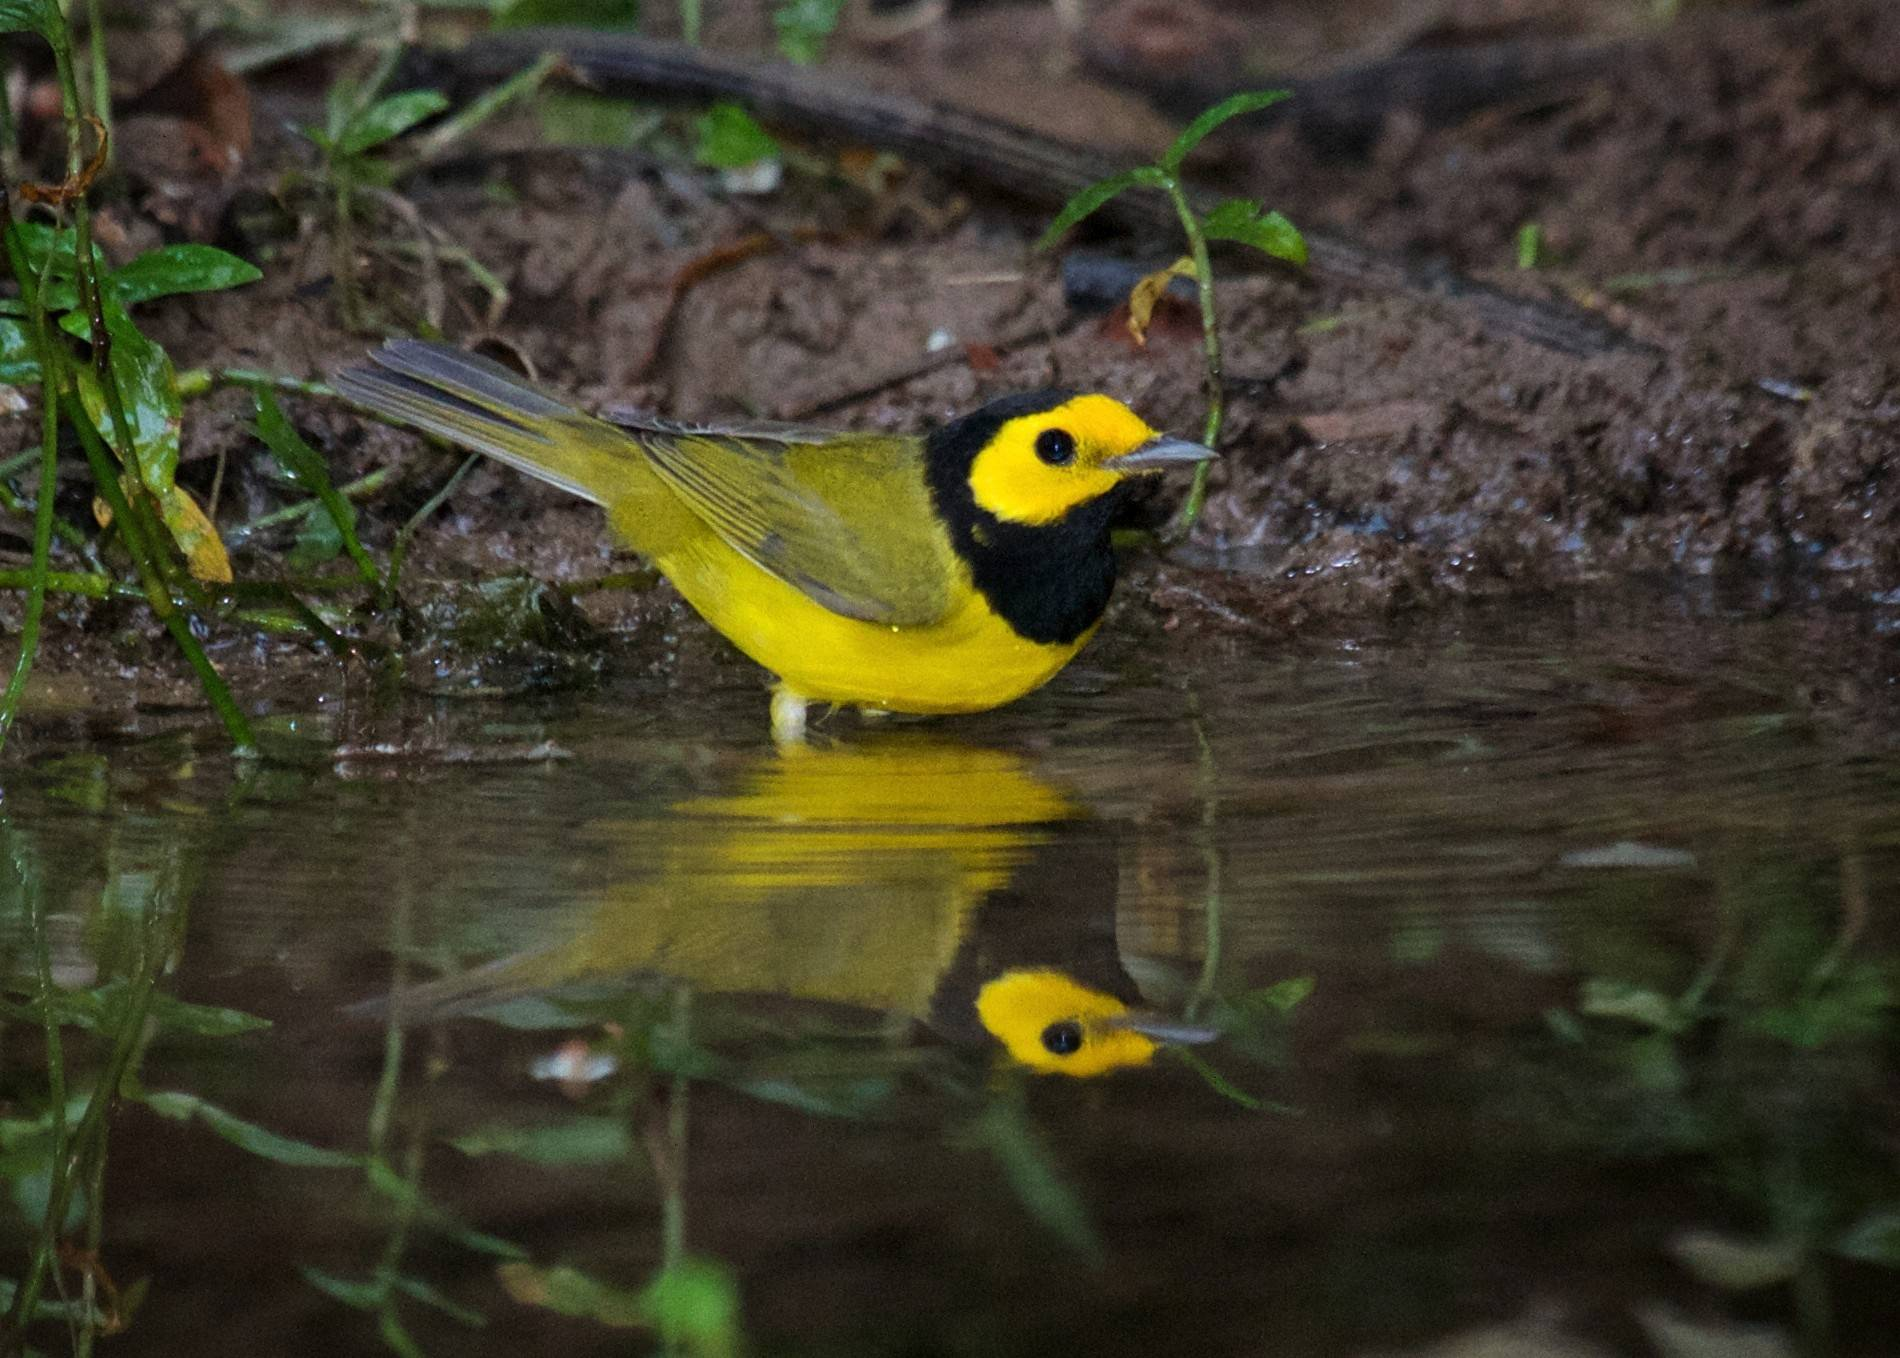 The male hooded warbler is unmistakable and also personally meaningful to Jeff Reiter. It's the species that triggered his interest in birds and birding back in 1994.